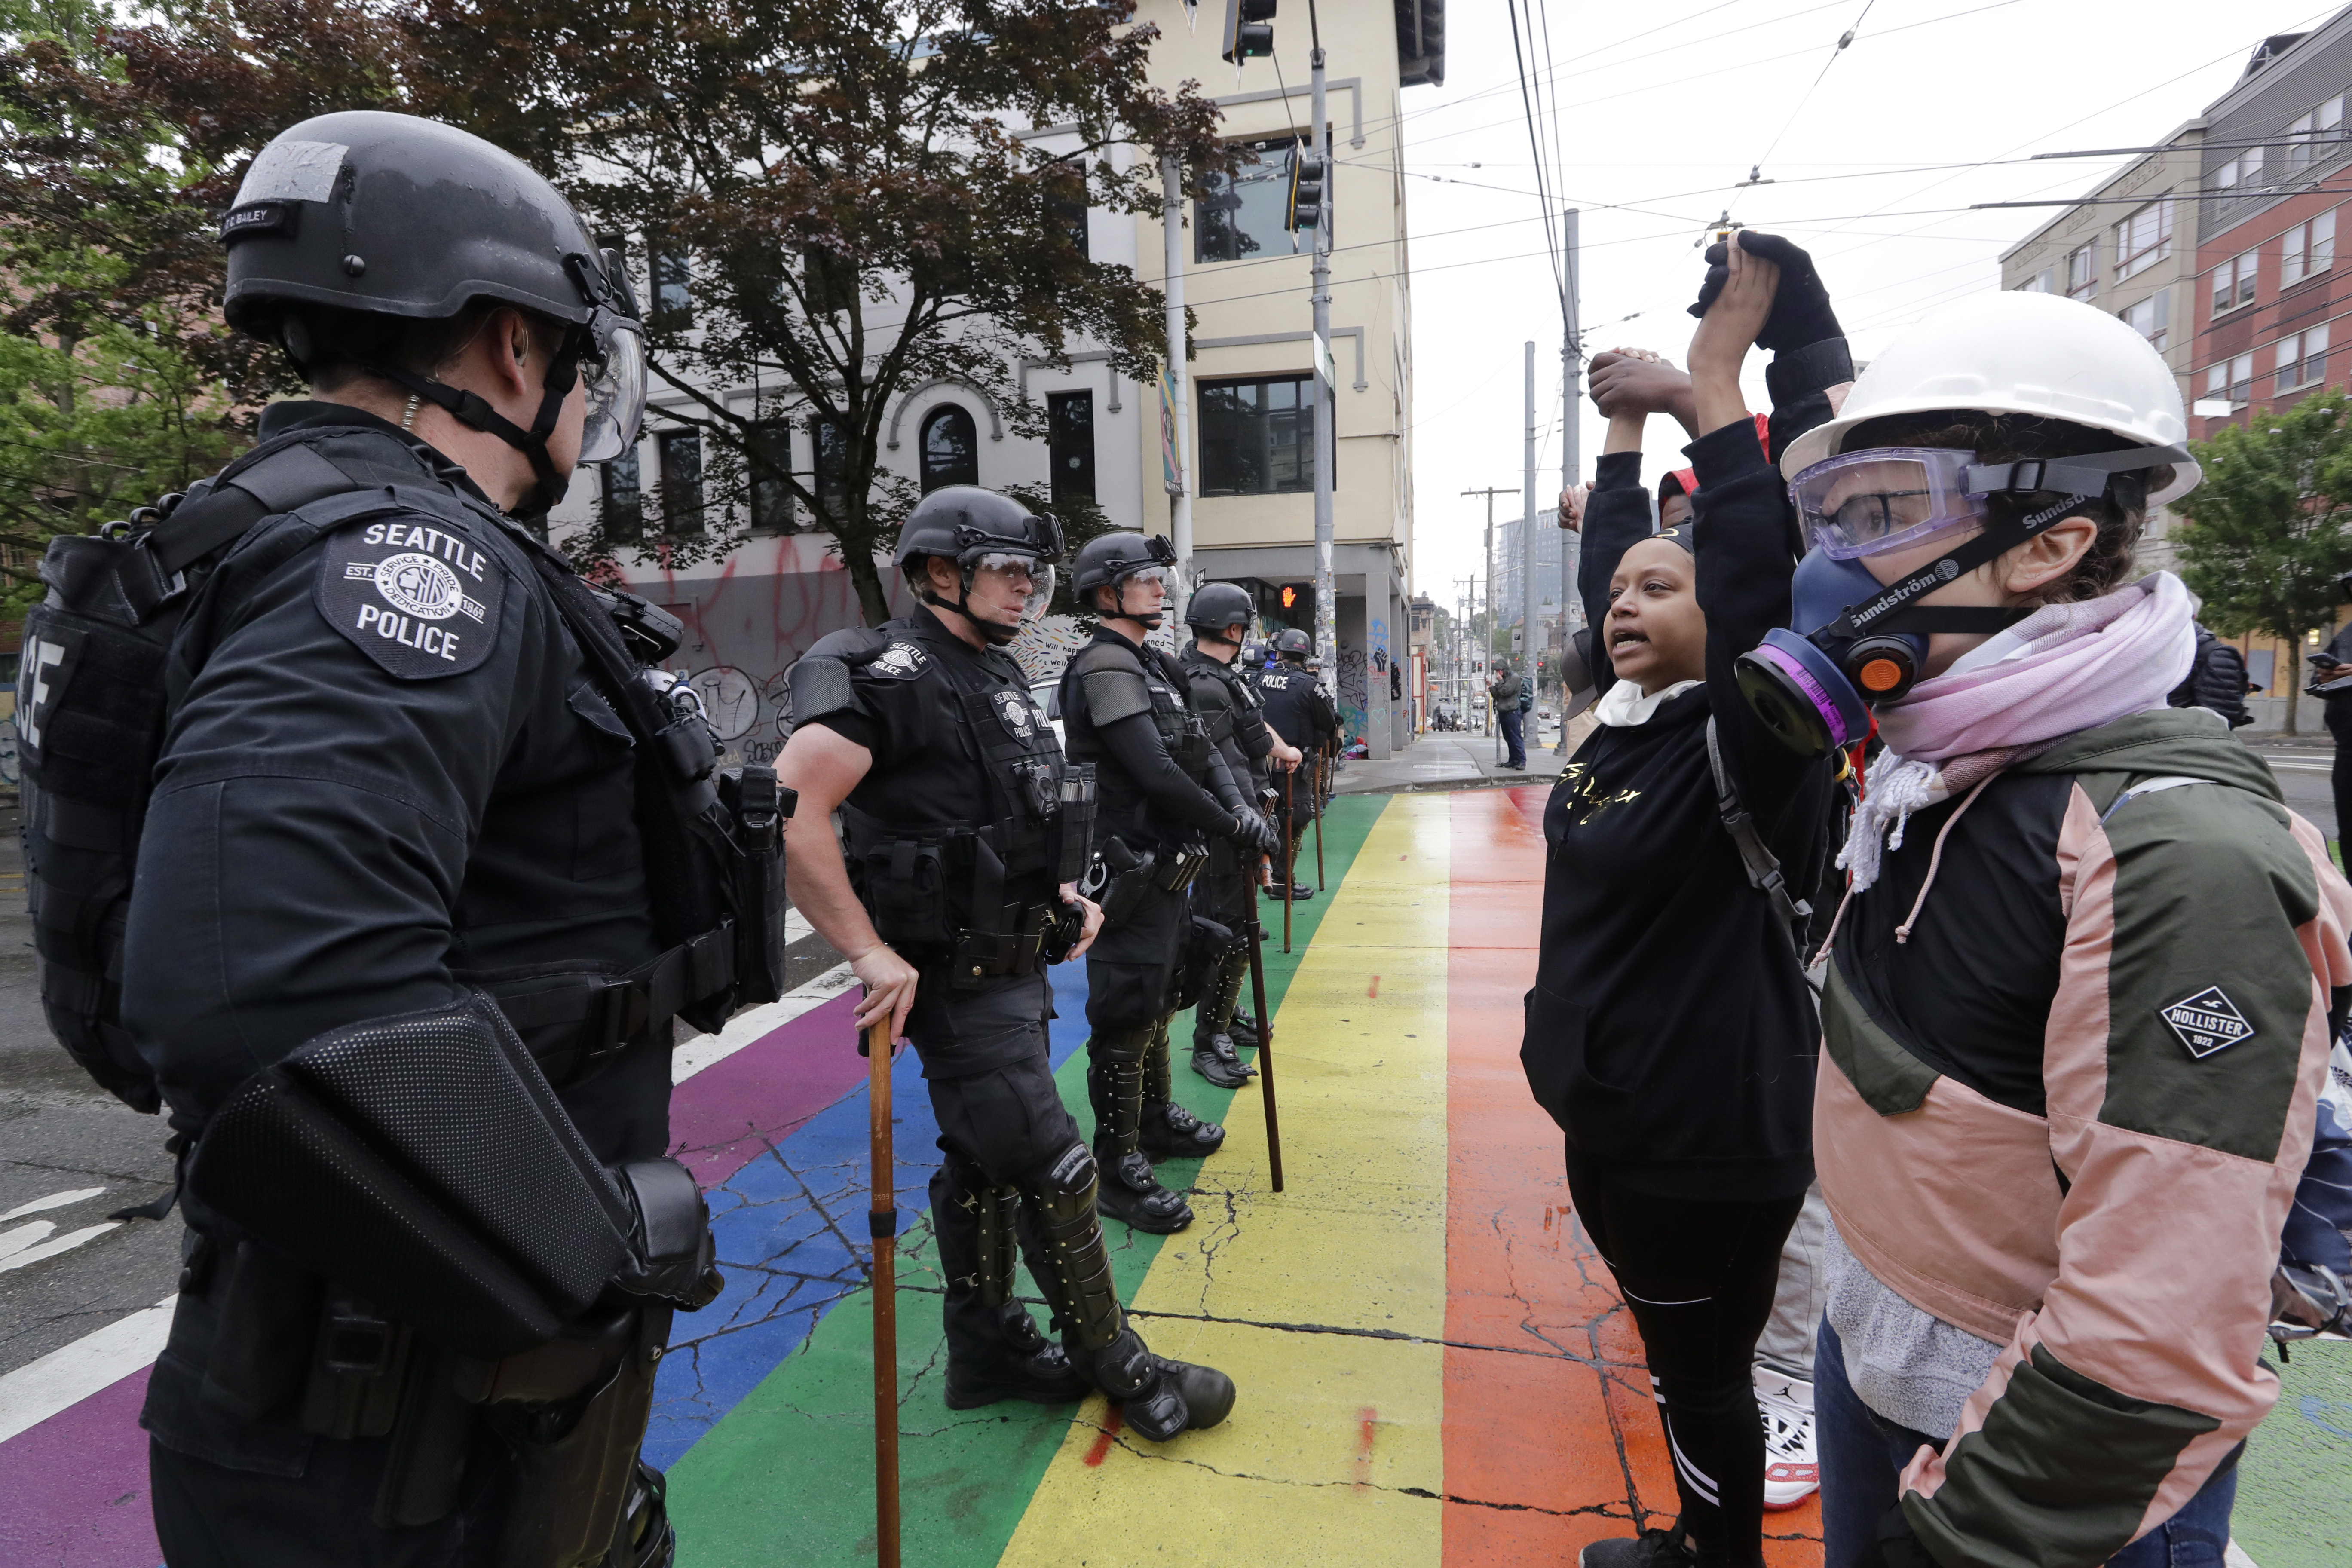 Protesters hold hands in front of a line of police officers blocking a street on July 1, 2020, in Seattle. The  Capitol Hill Occupied Protest  zone was set up near downtown following the death of George Floyd while in police custody in Minneapolis.